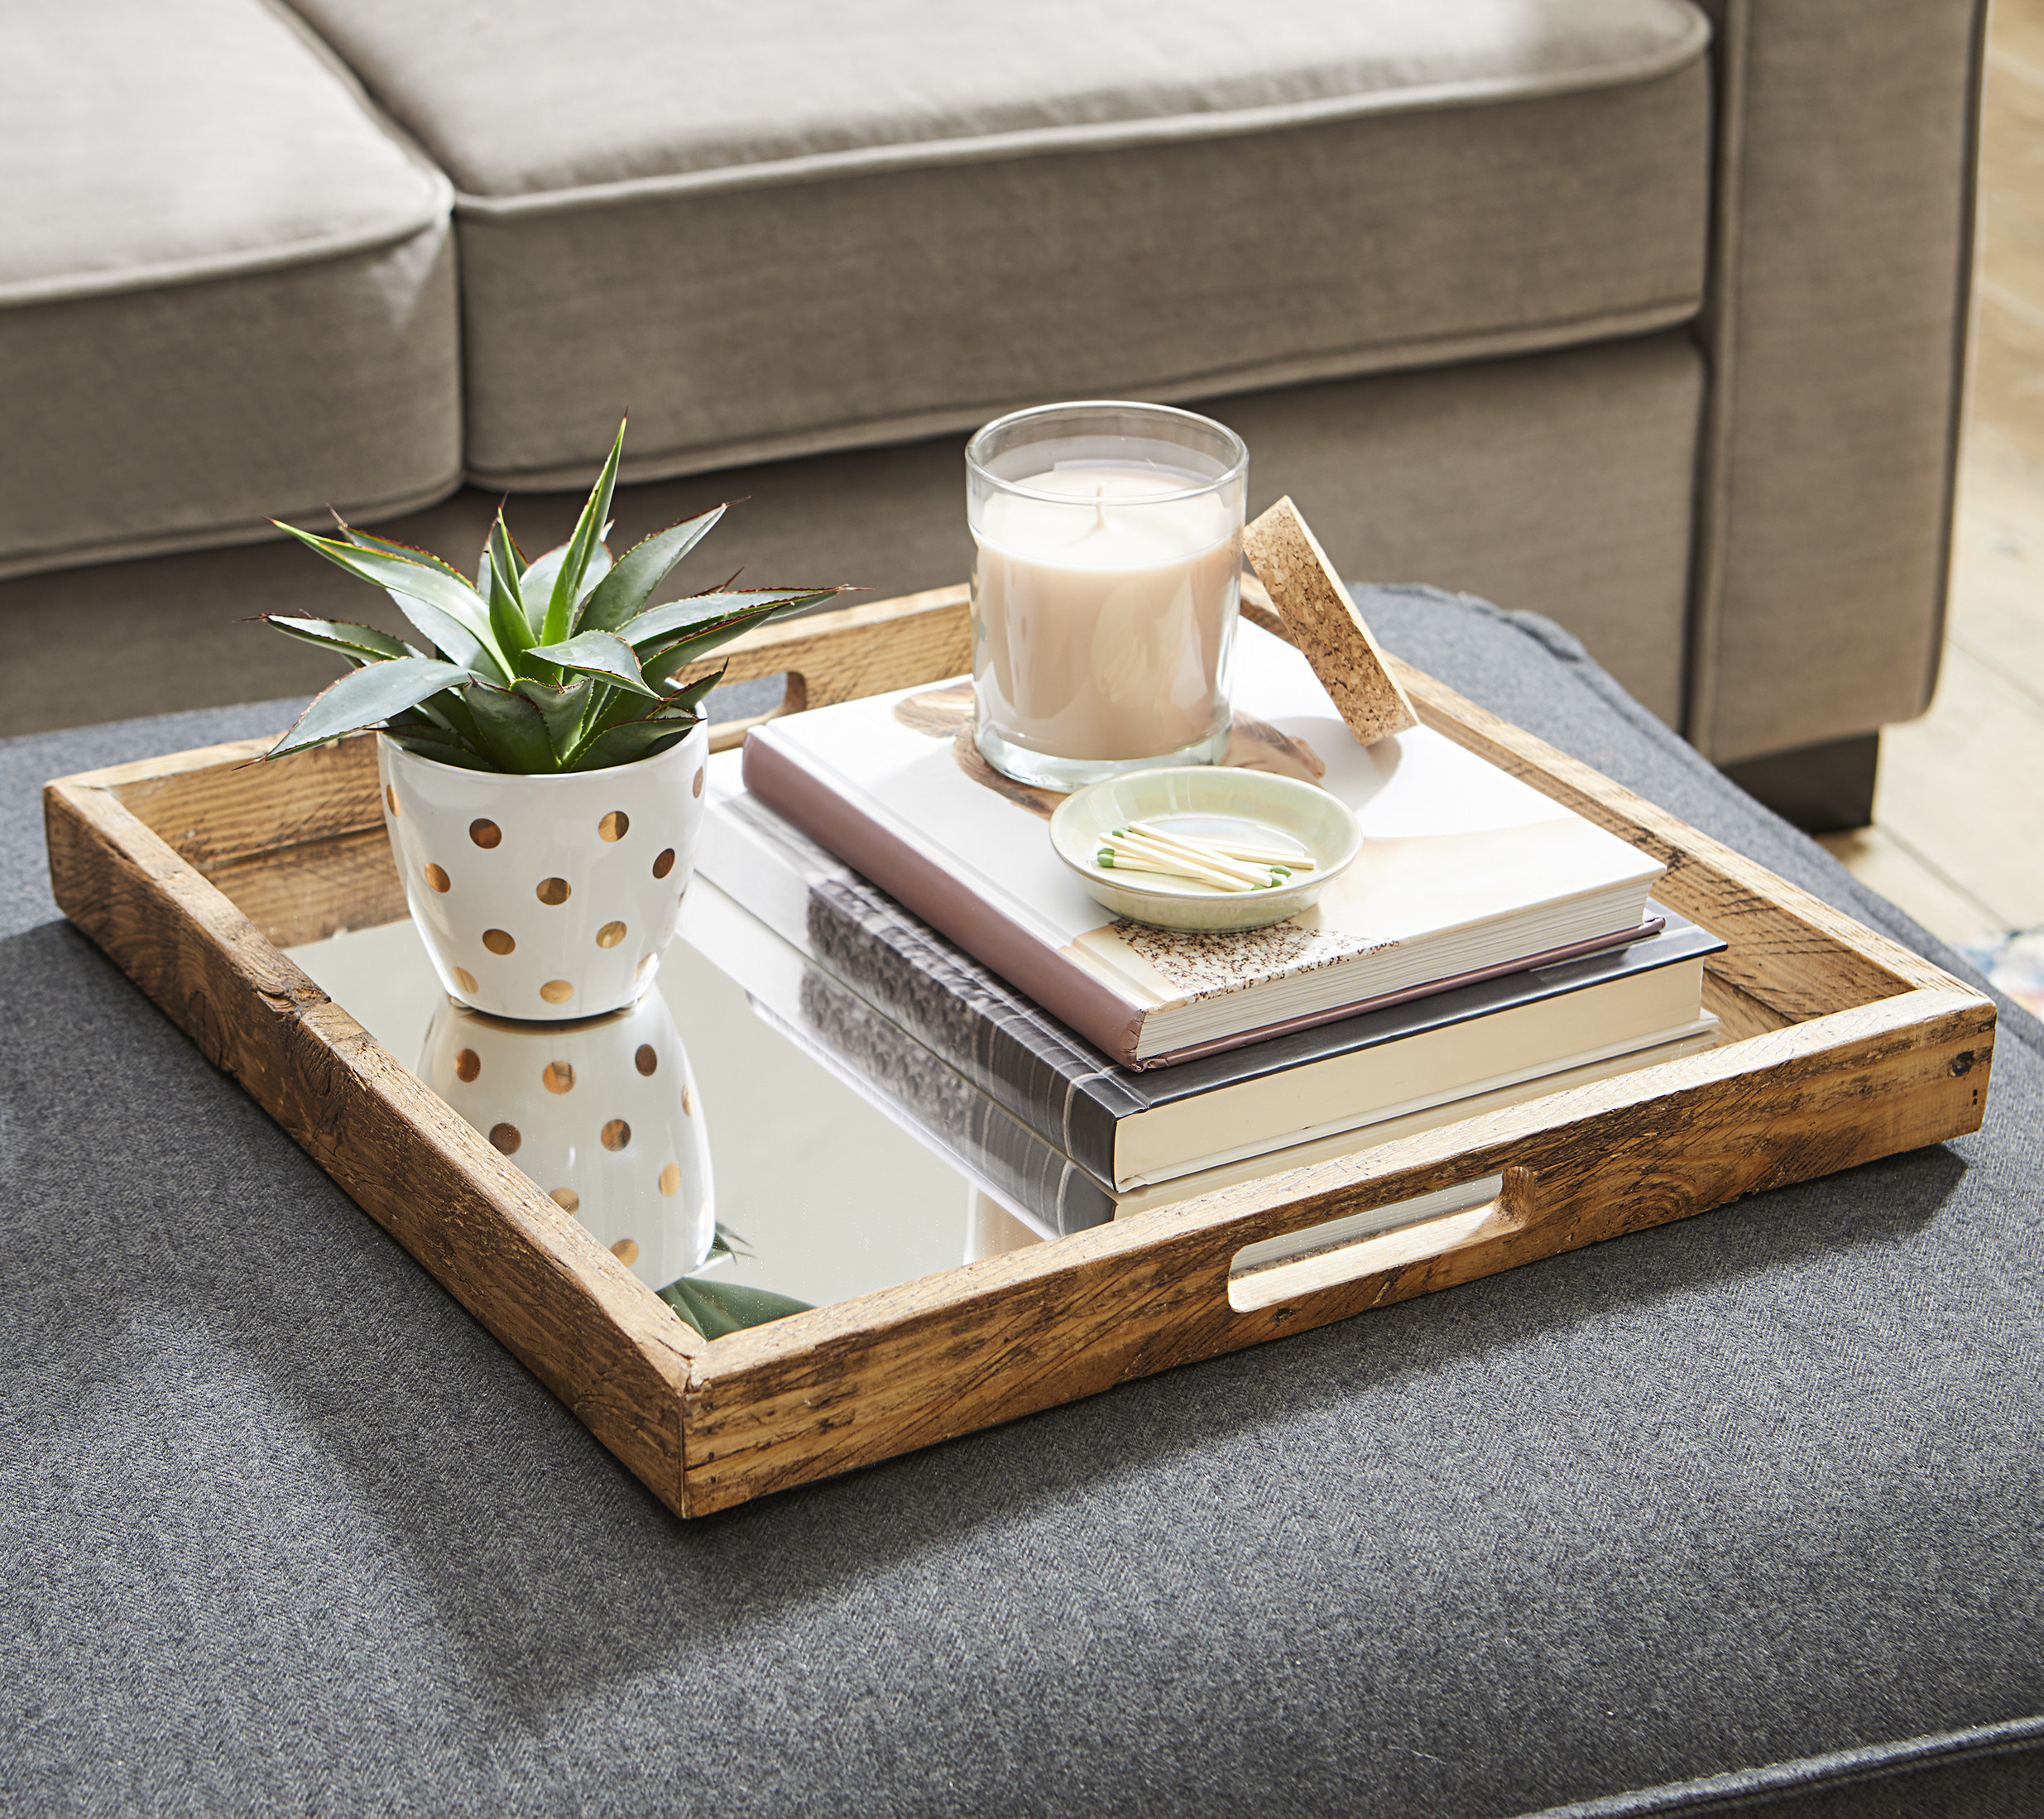 The wooden tray on ottoman